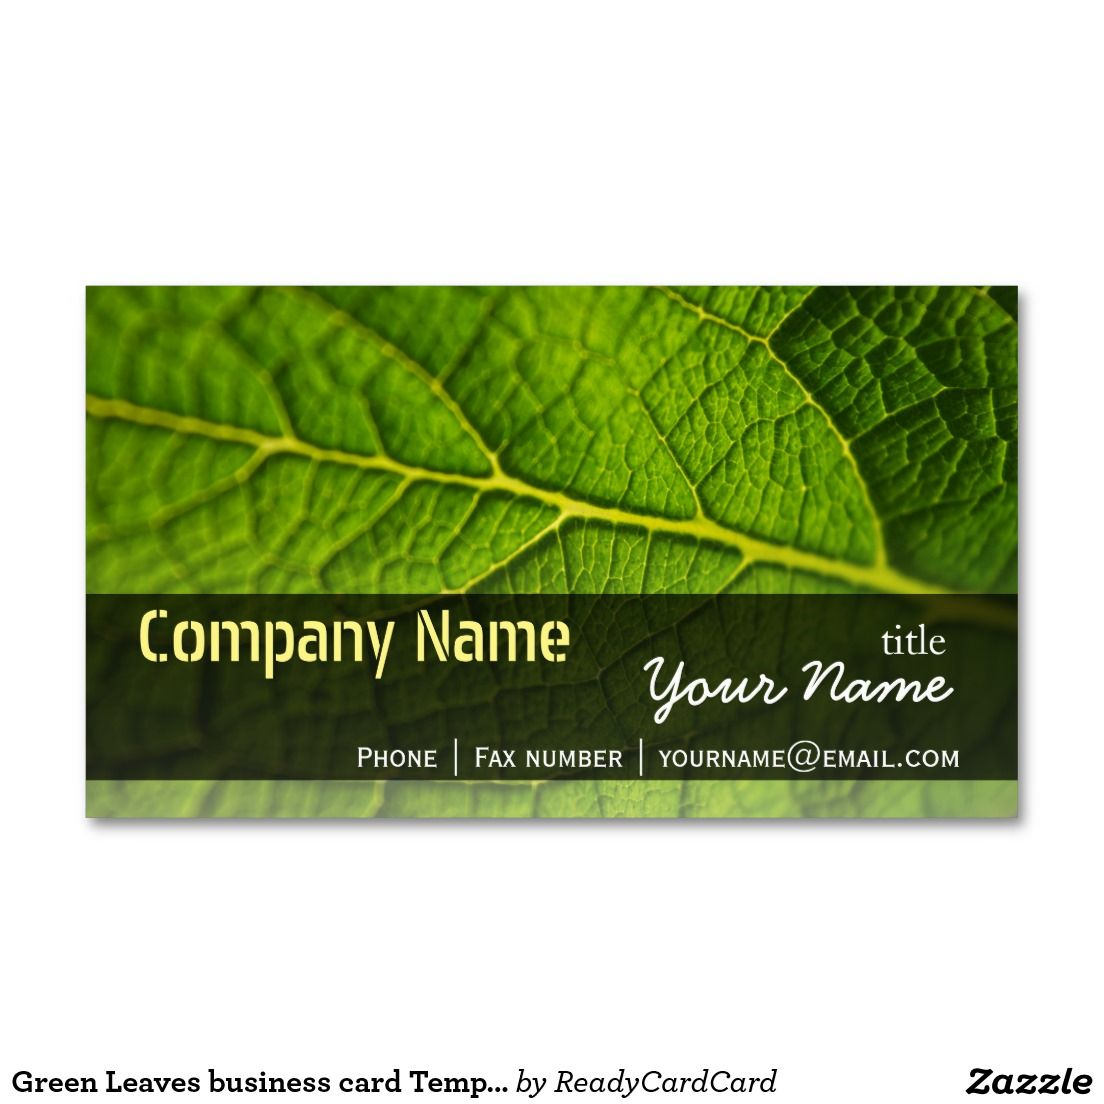 Green Leaves business card Templates   Card templates, Business ...